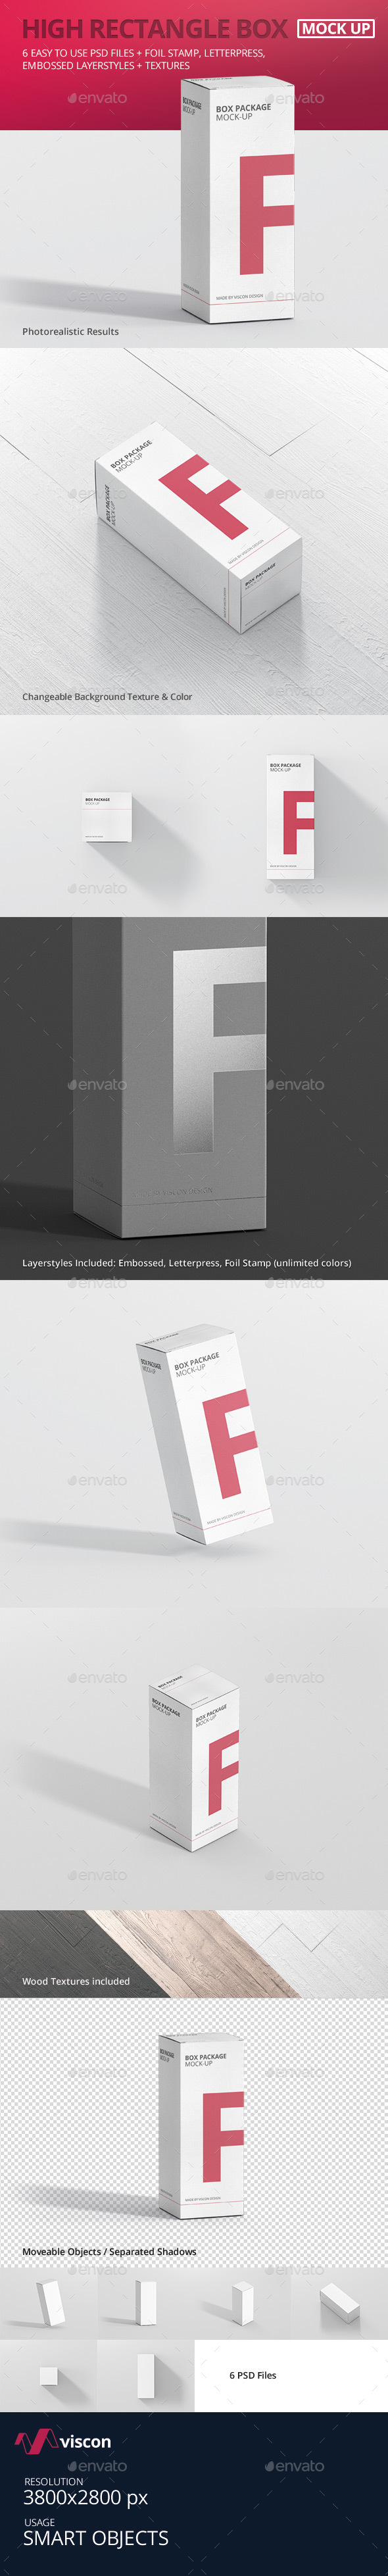 Package Box Mock-Up - High Rectangle - Miscellaneous Packaging